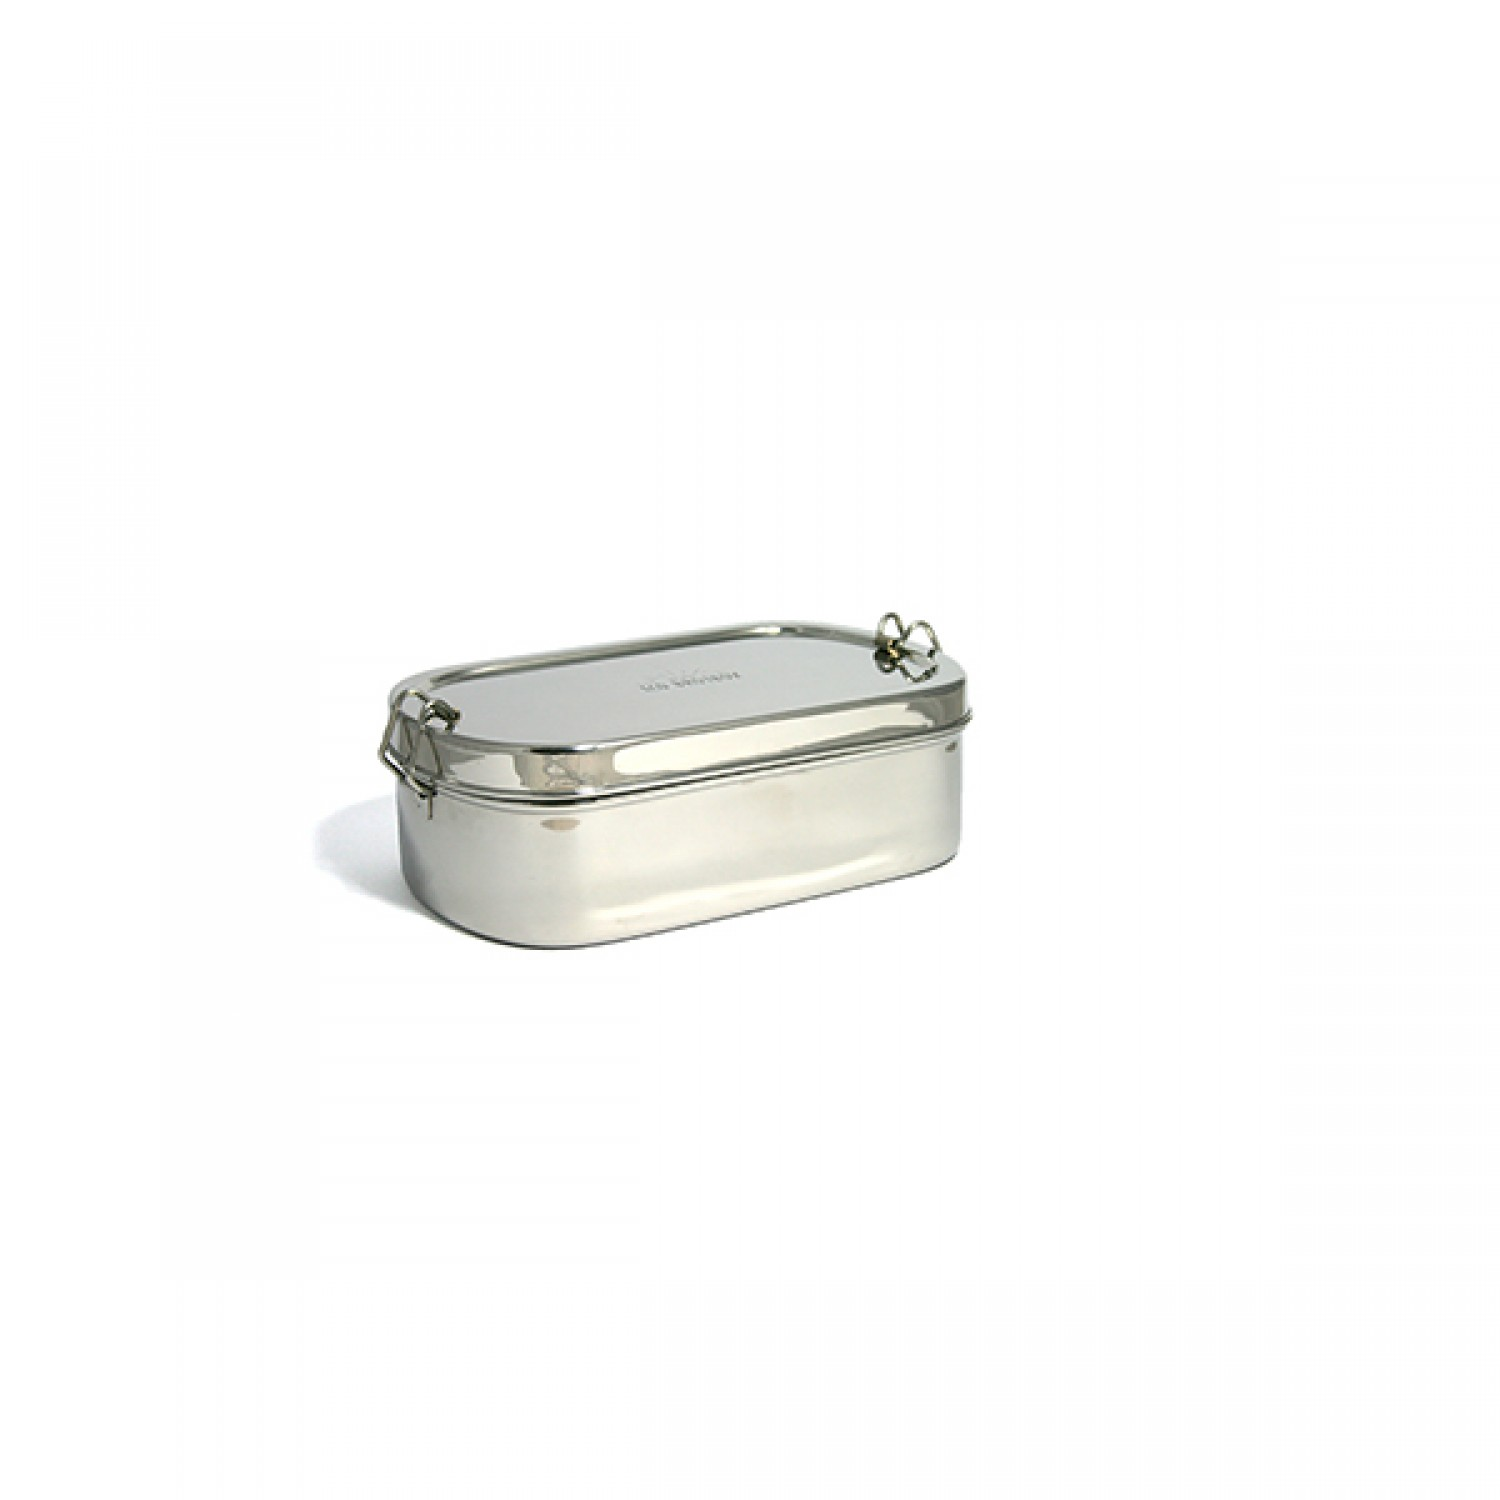 Goodies Box: 1.7 L lunchbox of stainless steel | Ecobrotbox